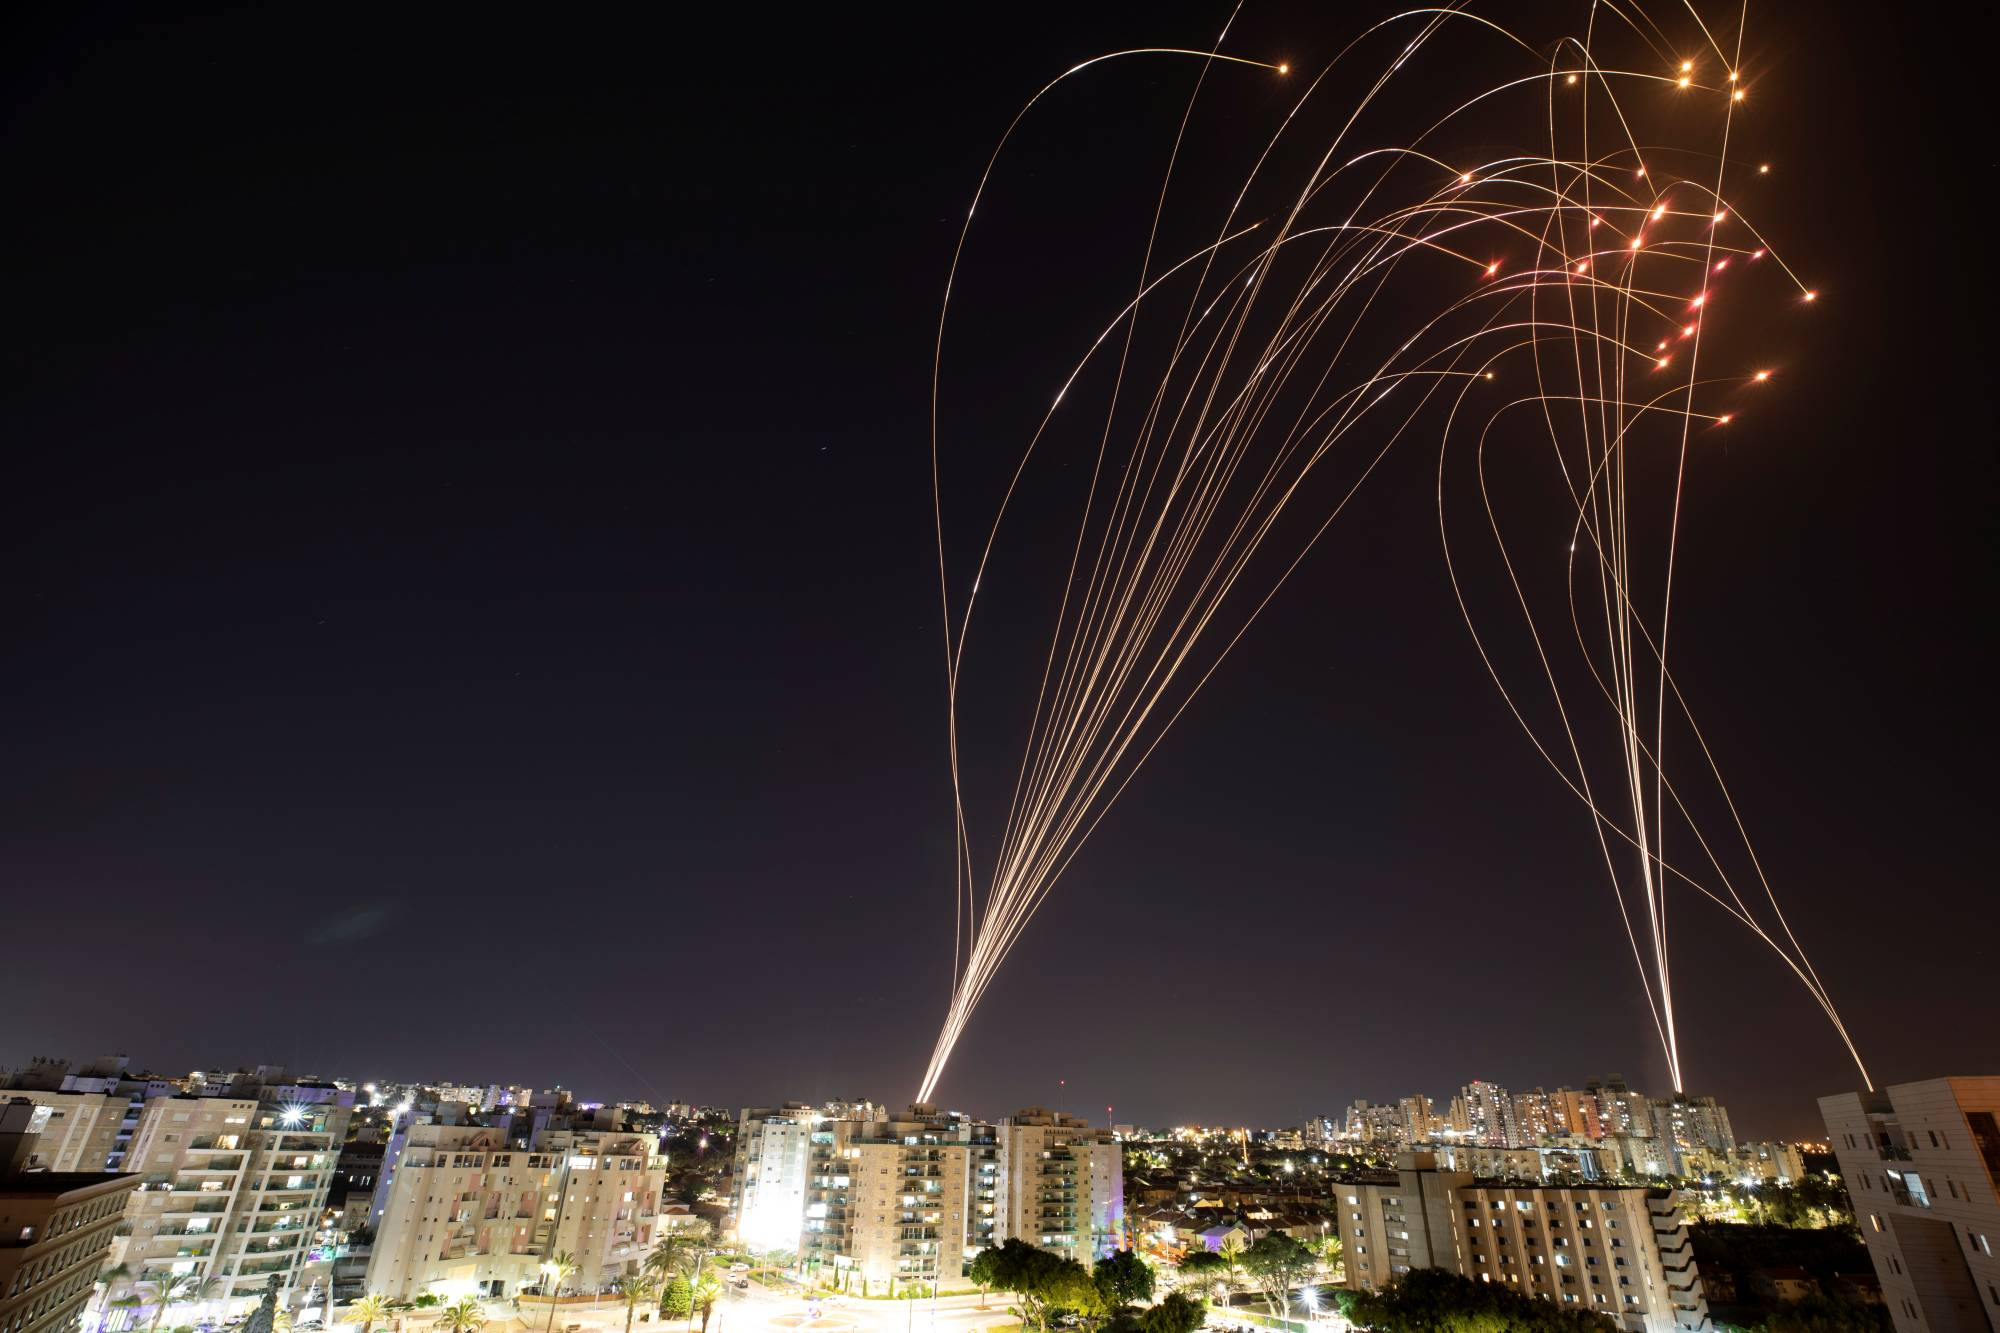 U.S. Opts Out Of Purchasing Israeli Iron Dome: Defense News